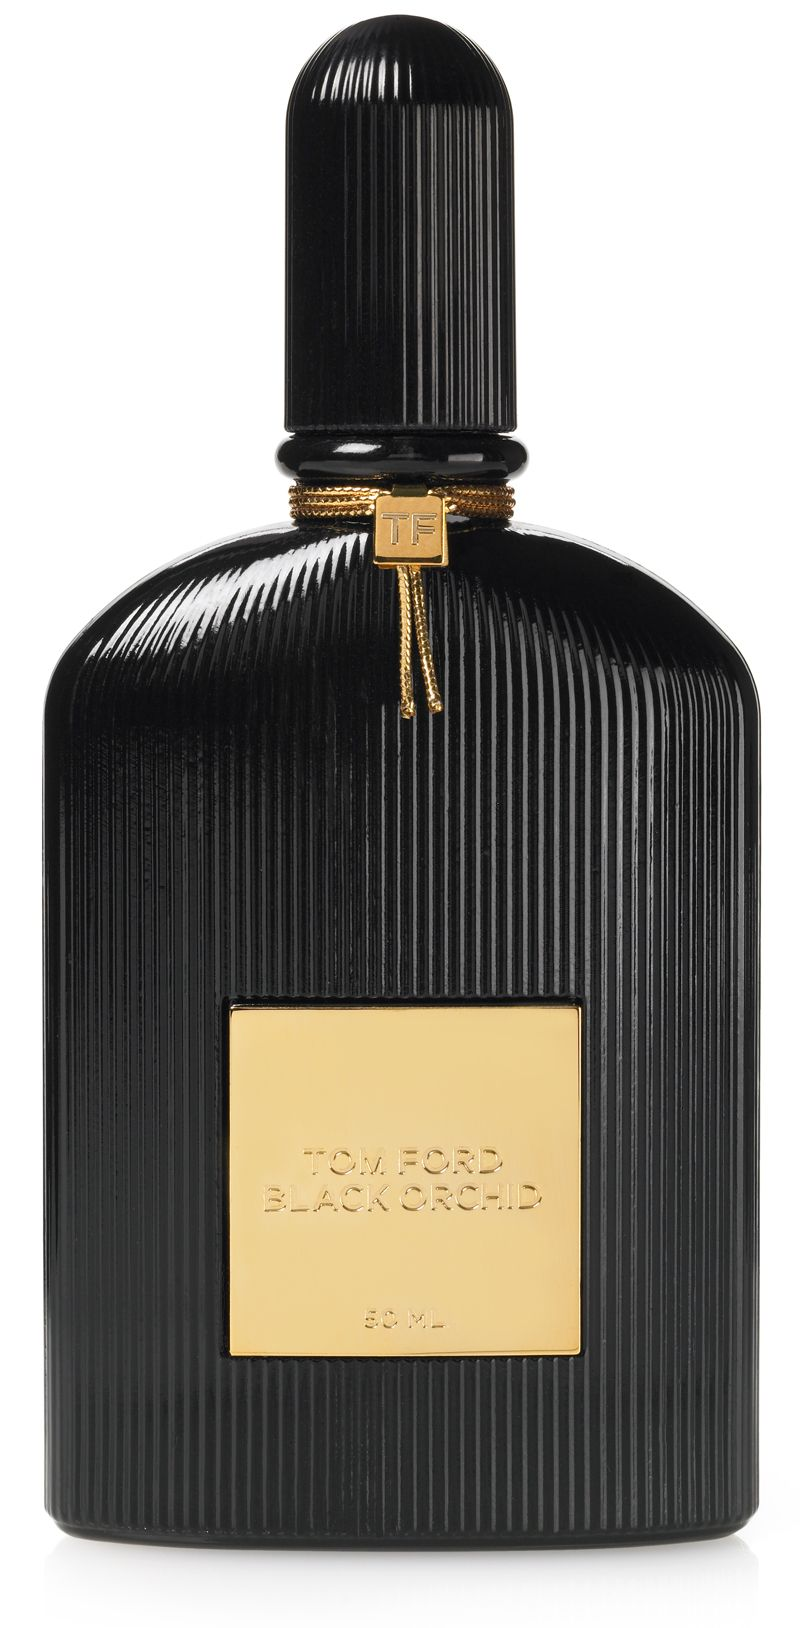 Black Orchid EDP 30ml